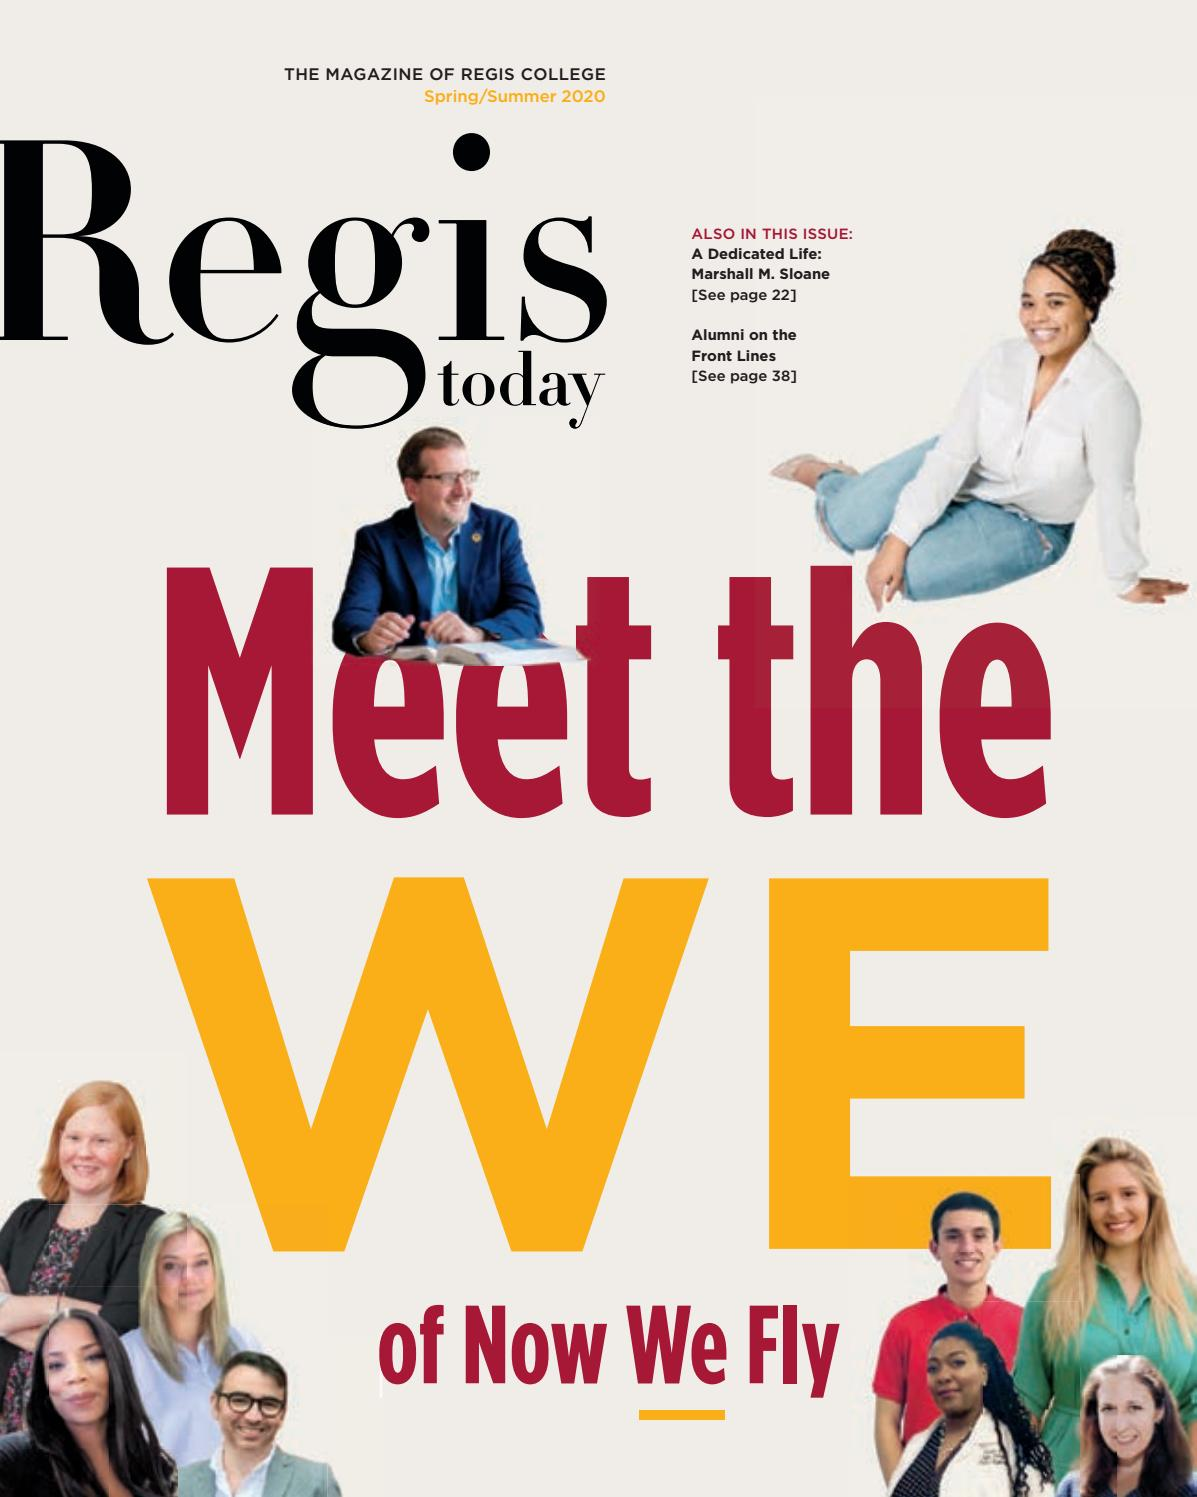 Regis Today Spring Summer 2020 By Regis College Issuu Join facebook to connect with elisabeth anne and others you may know. spring summer 2020 by regis college